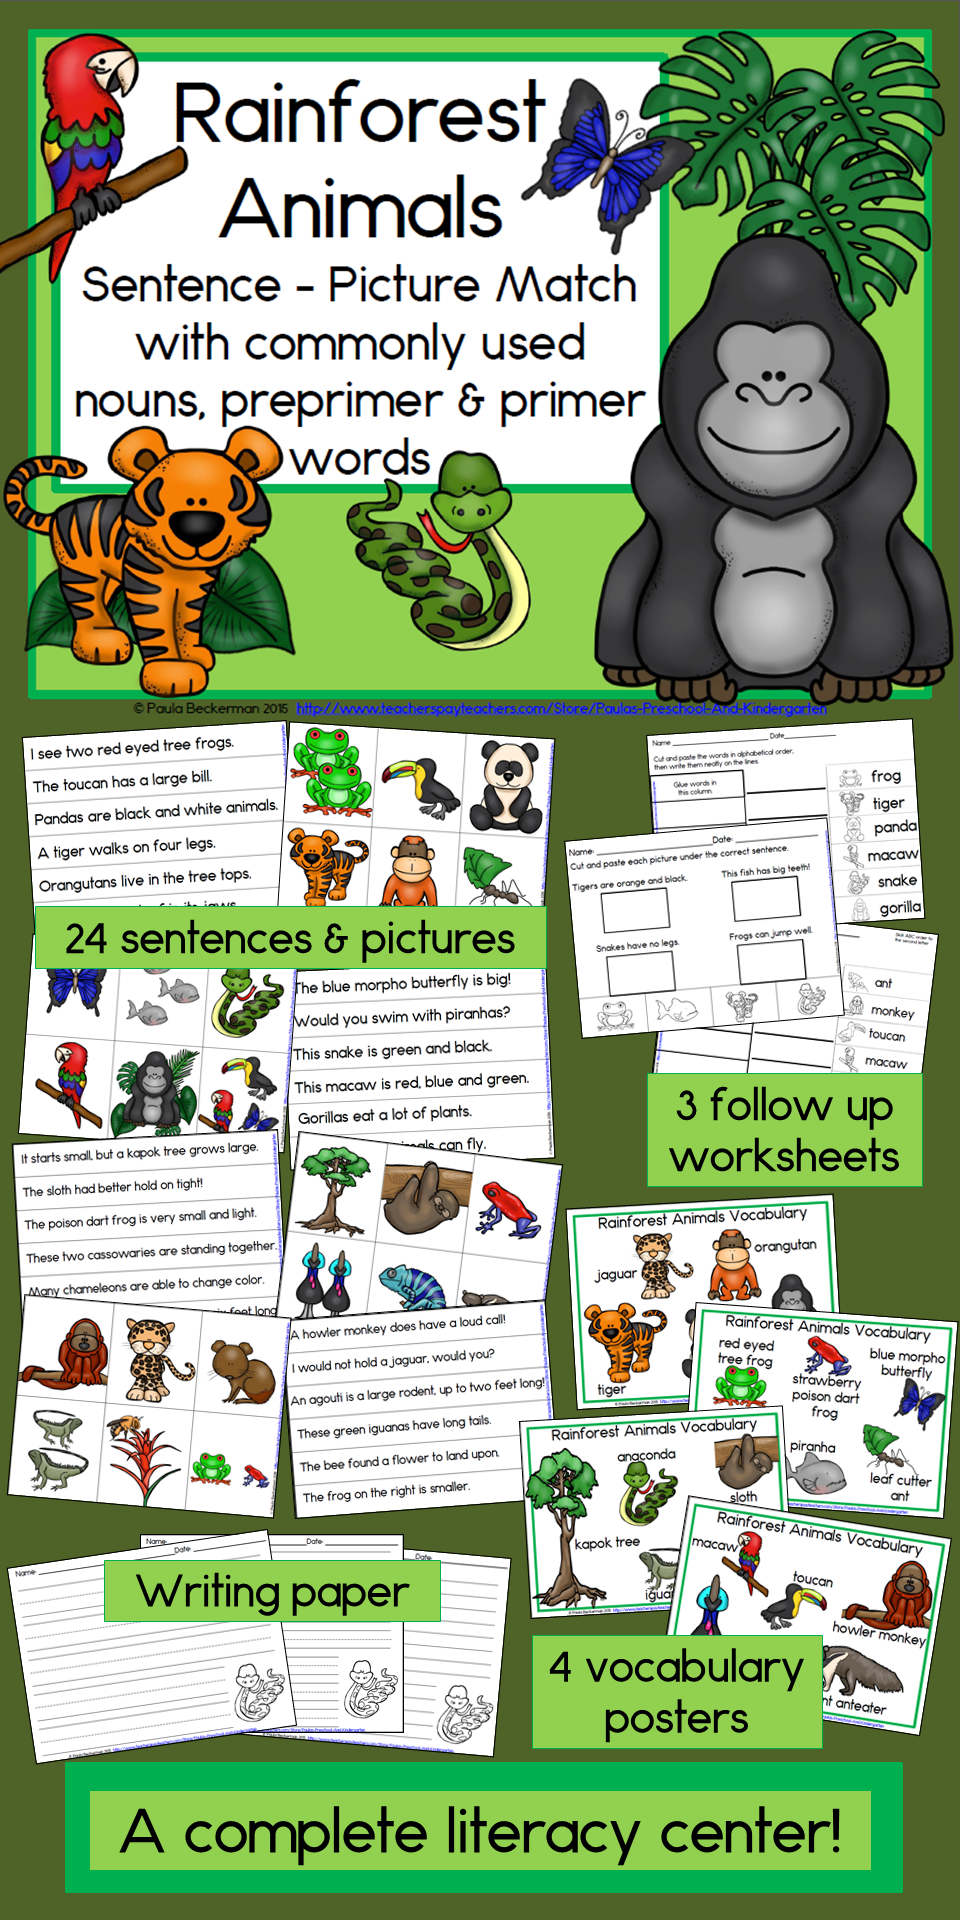 Students will be engaged in reading sight words with Rainforest Animals Sentence Picture Match. There are 24 sentences and pictures to match! This packet has everything you need for a complete literacy center, including 4 vocabulary posters, 3 follow up worksheets, a leveled list of words used, and directions. Easy to prepare and use, your students will love Rainforest Animals! TpT $